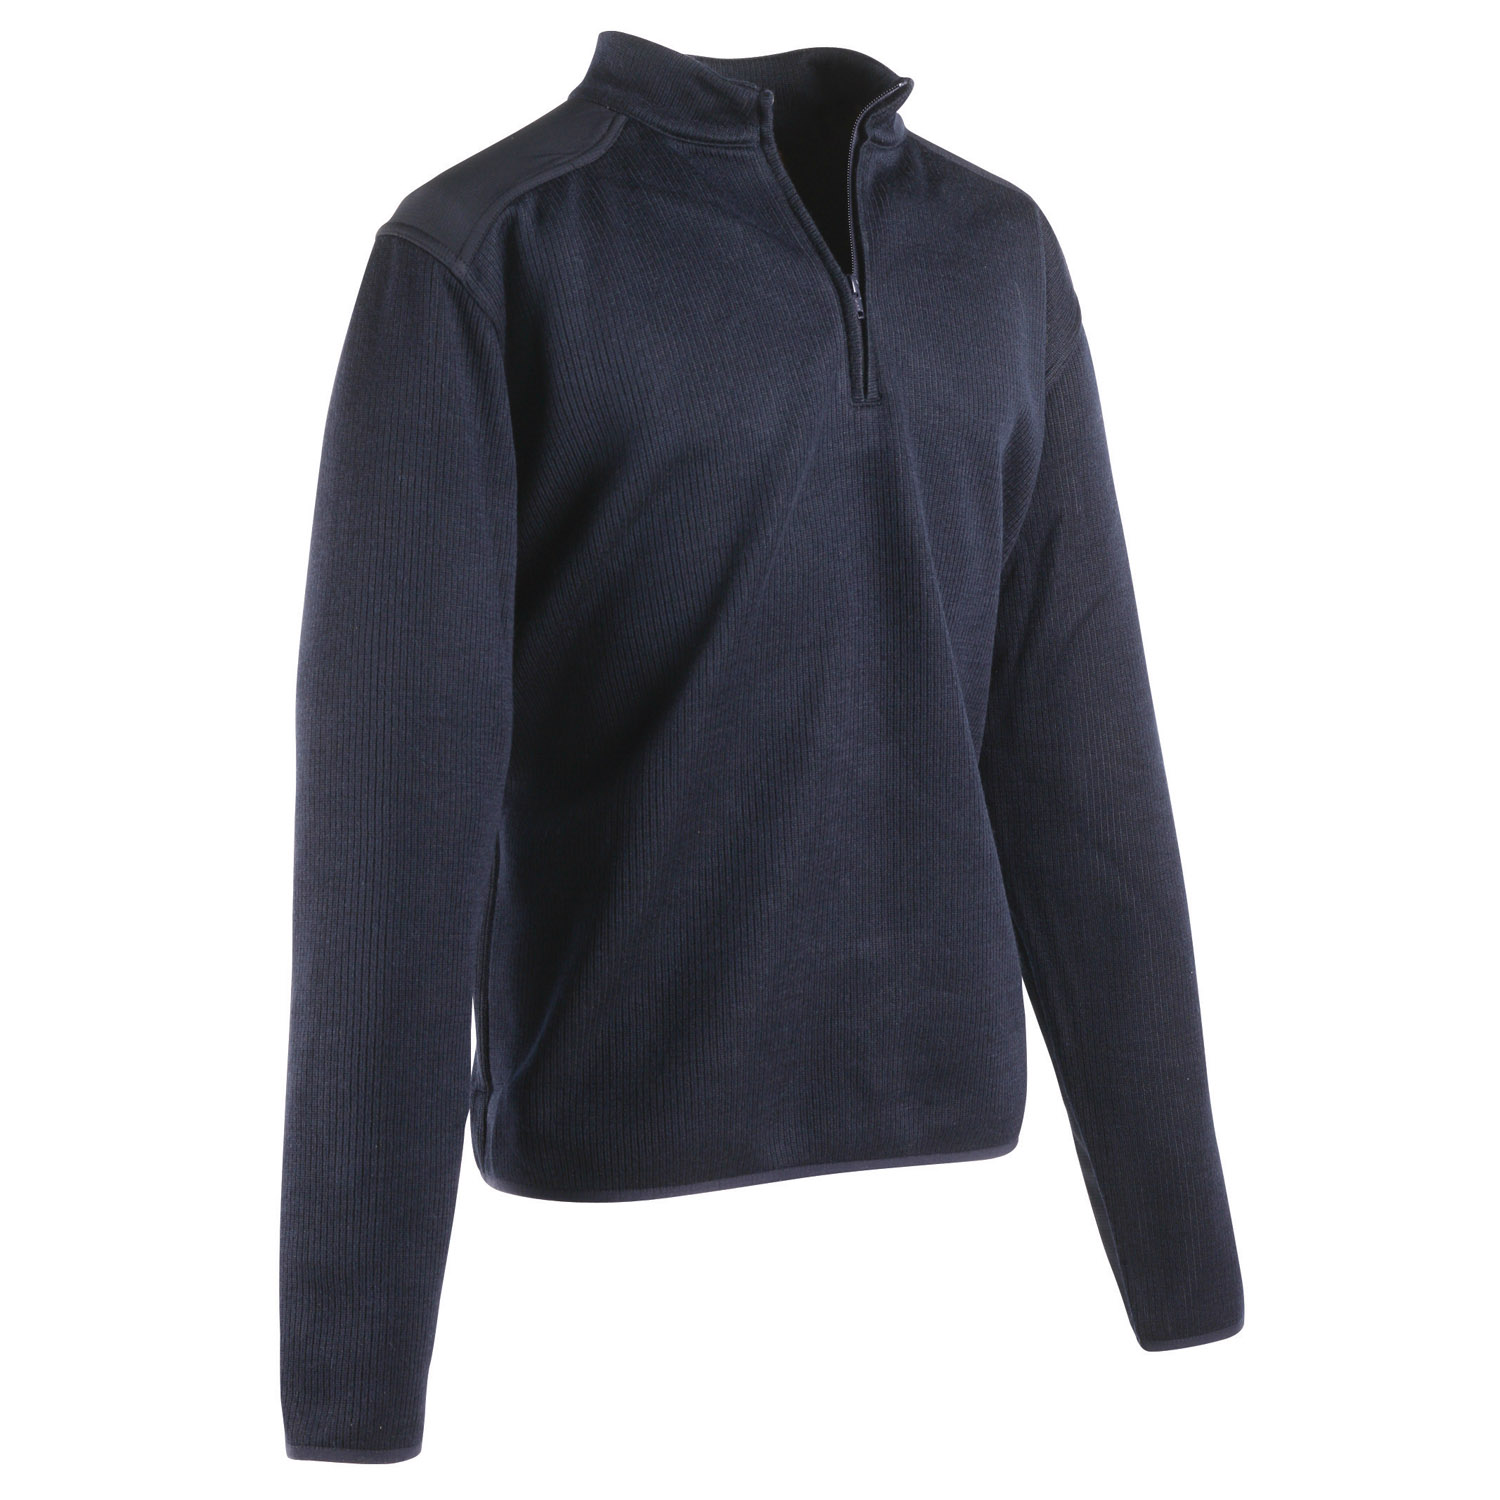 Flying Cross Fleece Lined Quarter Zip Commando Sweater